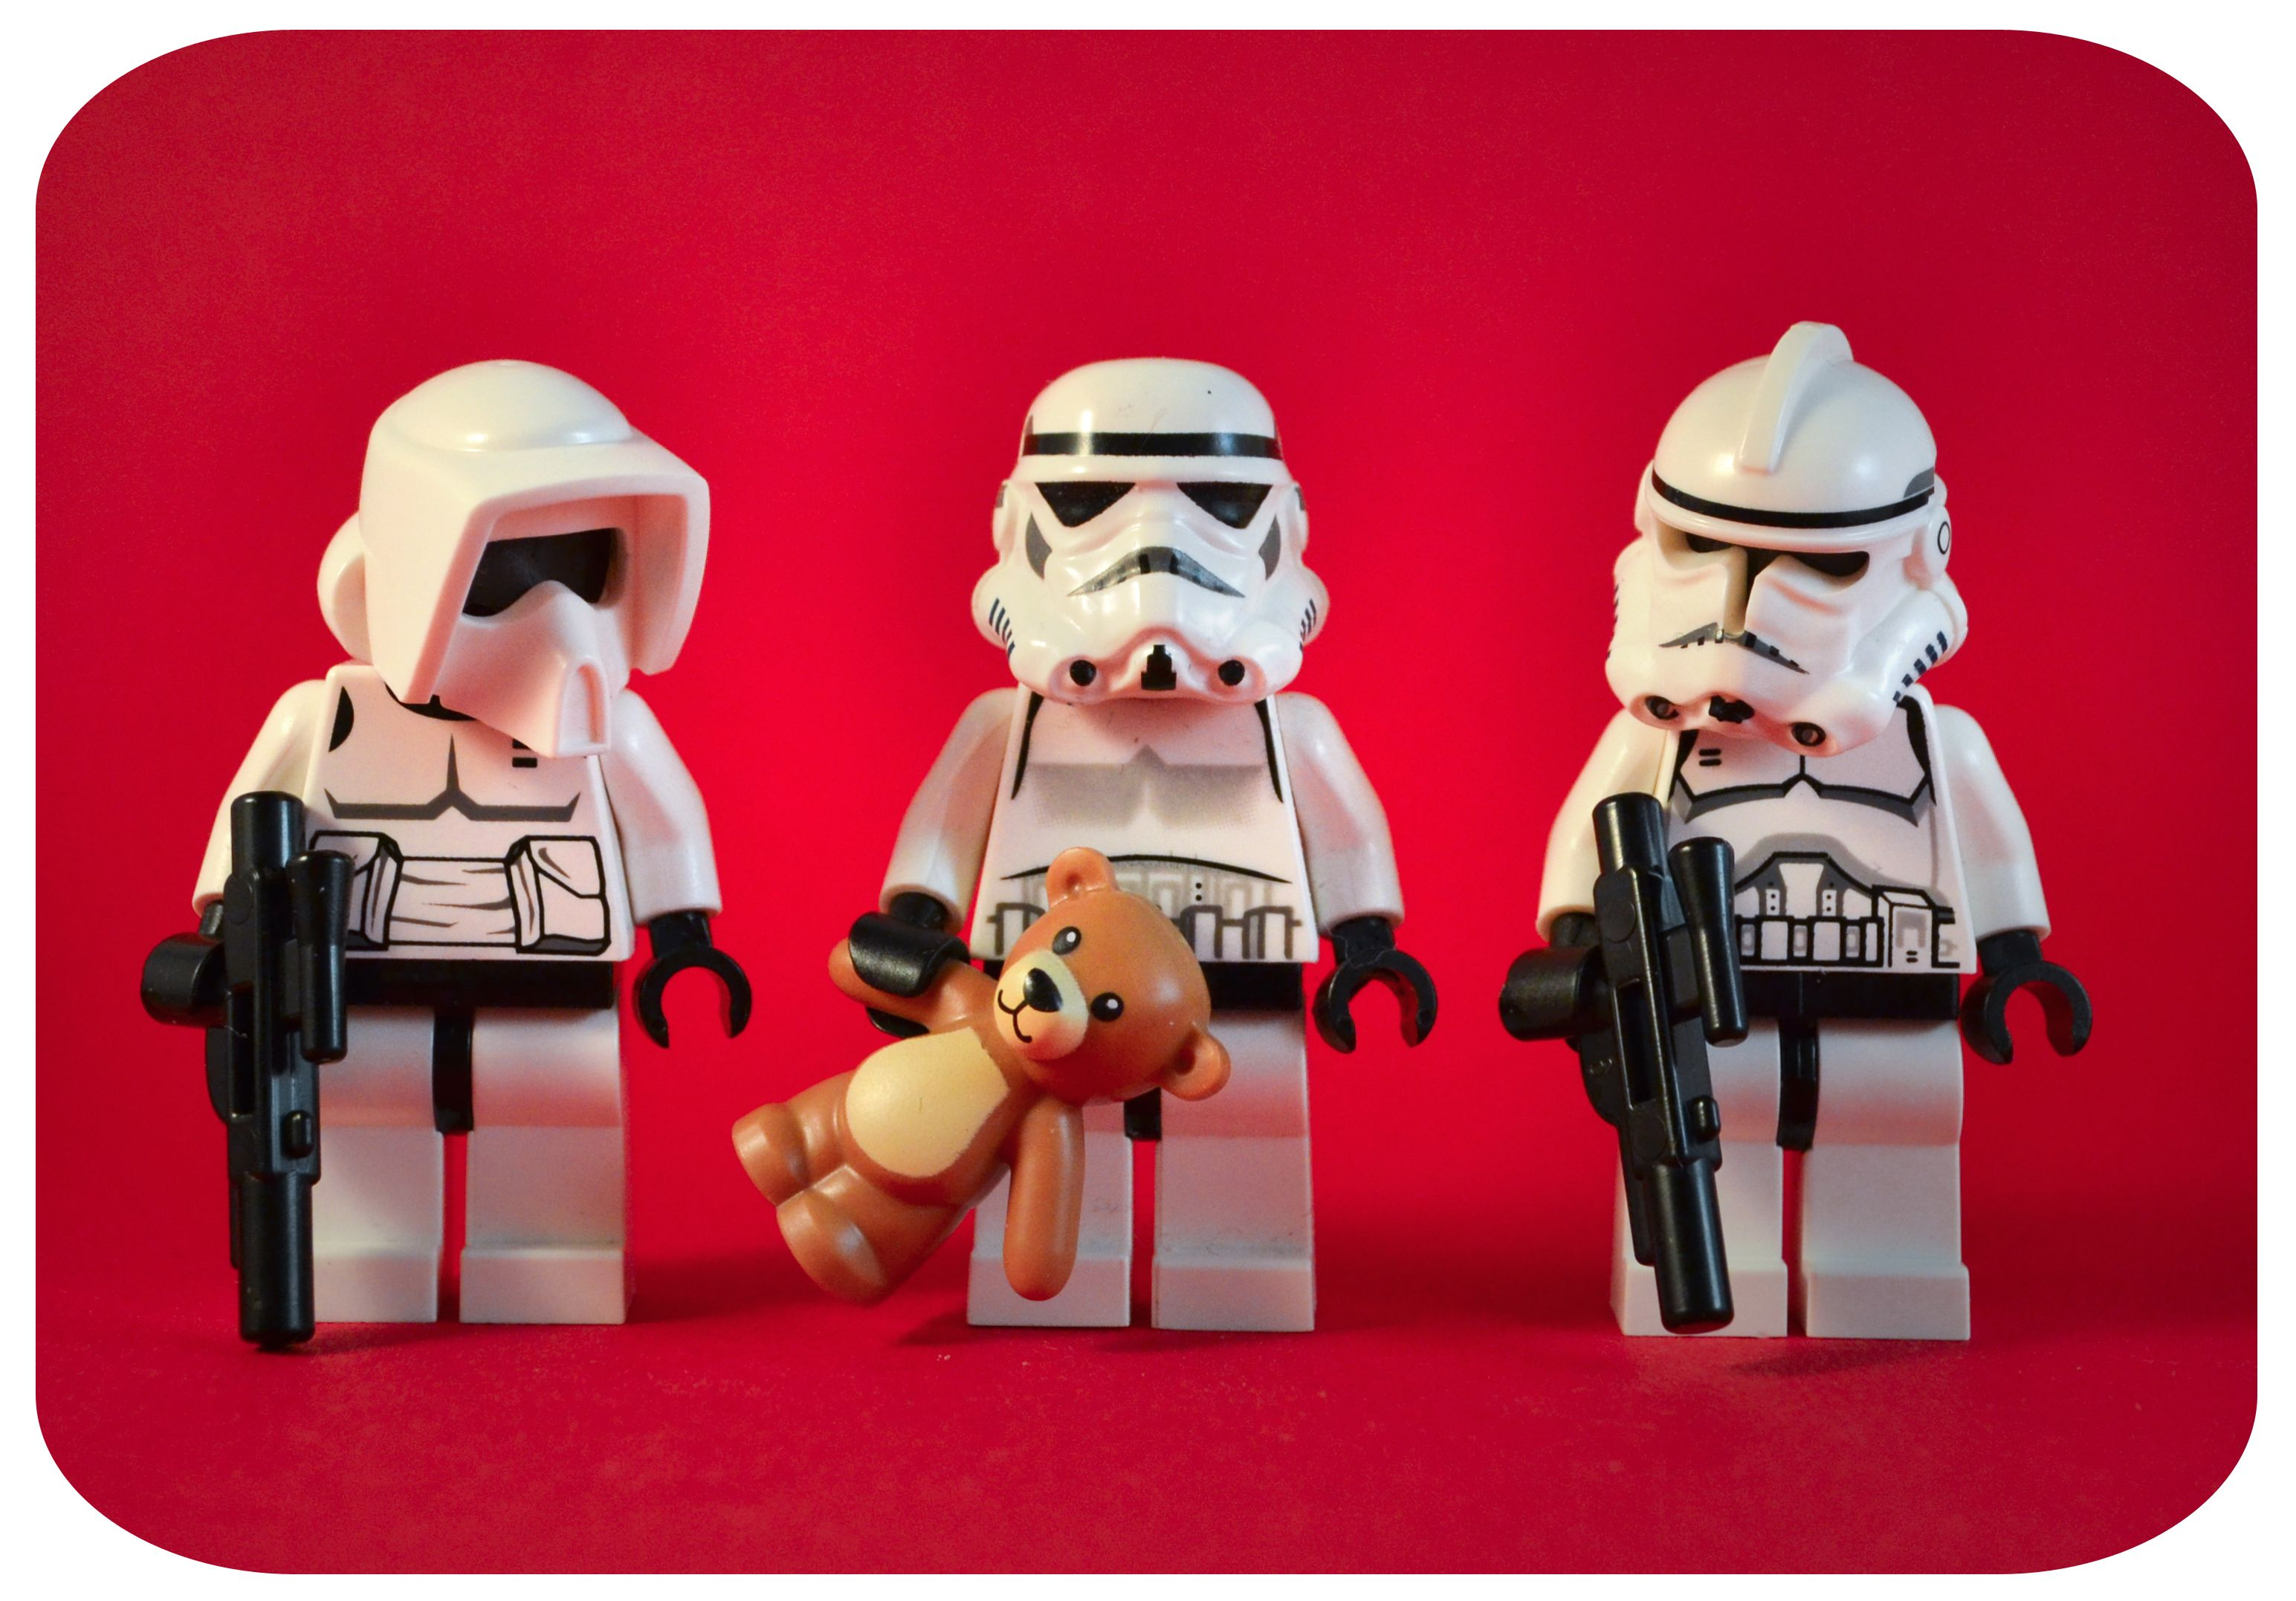 Star wars lego stormtrooper and star wars yo star - Personnage star wars lego ...